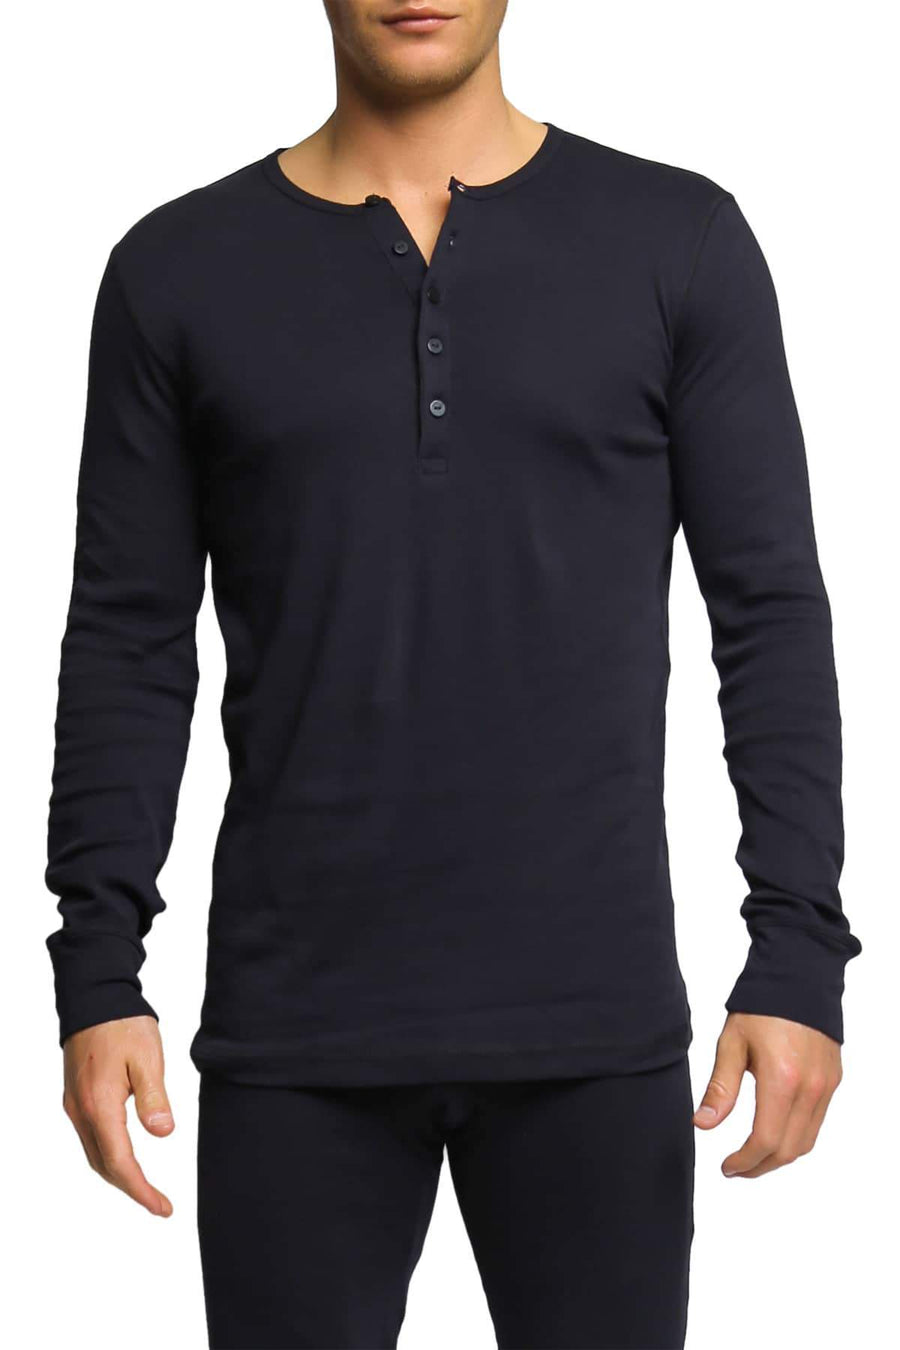 Shirts - 2(X)IST Black Essential Long Sleeve Henley -   jetcube